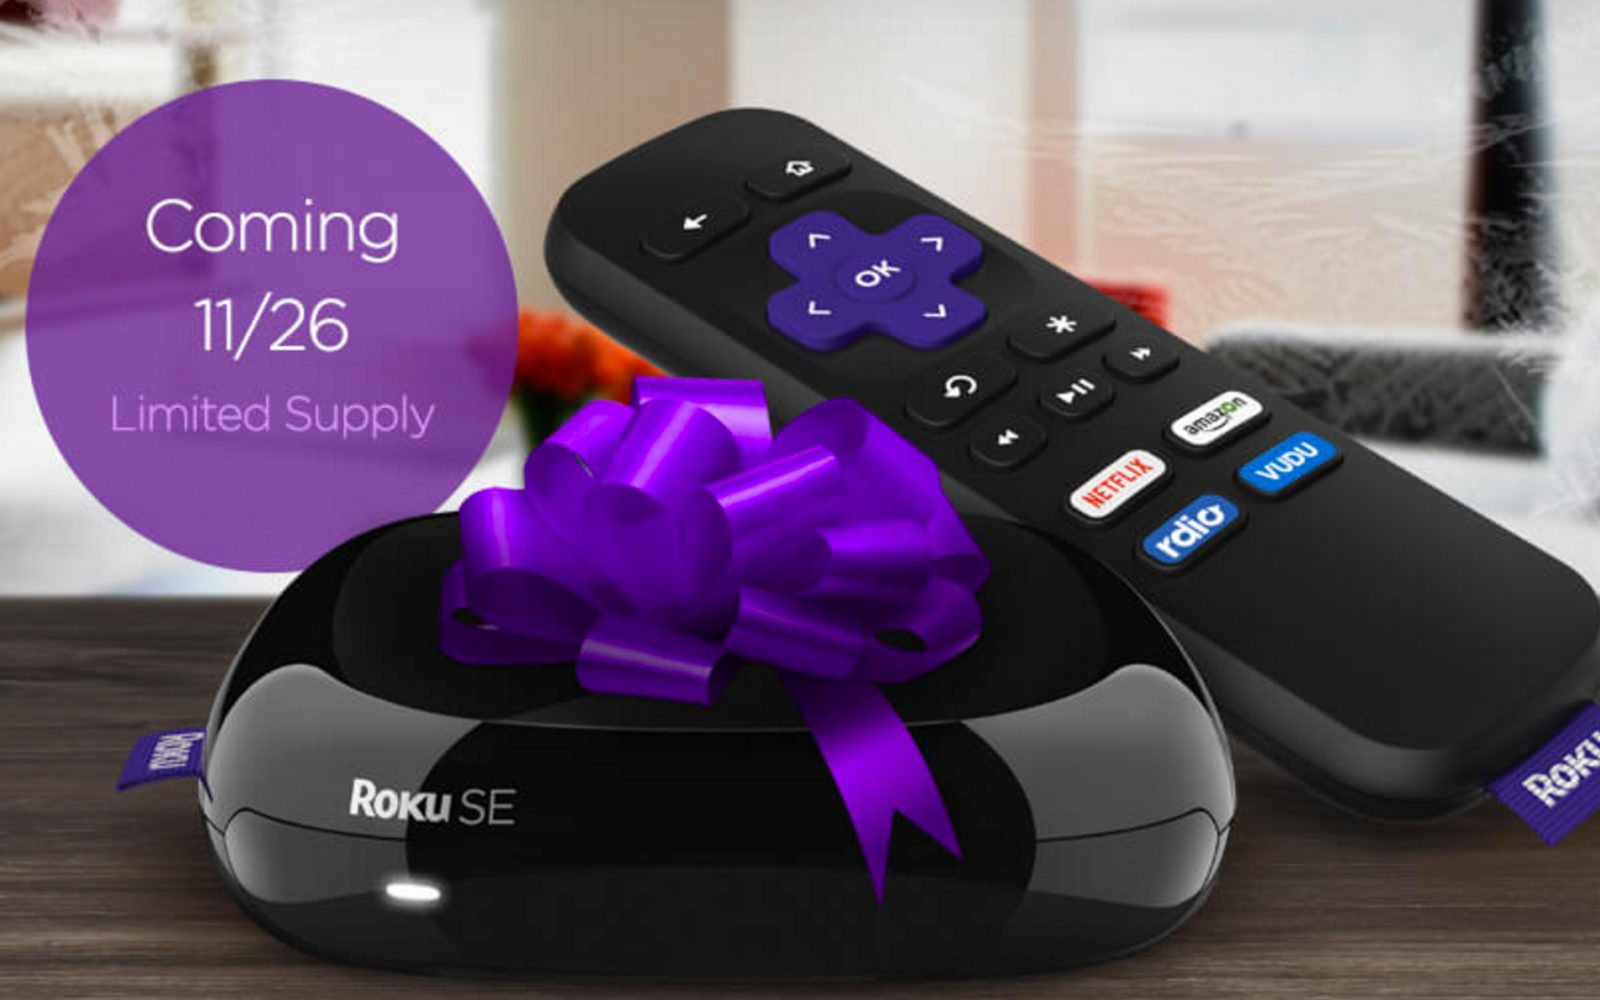 Roku surprises with a new